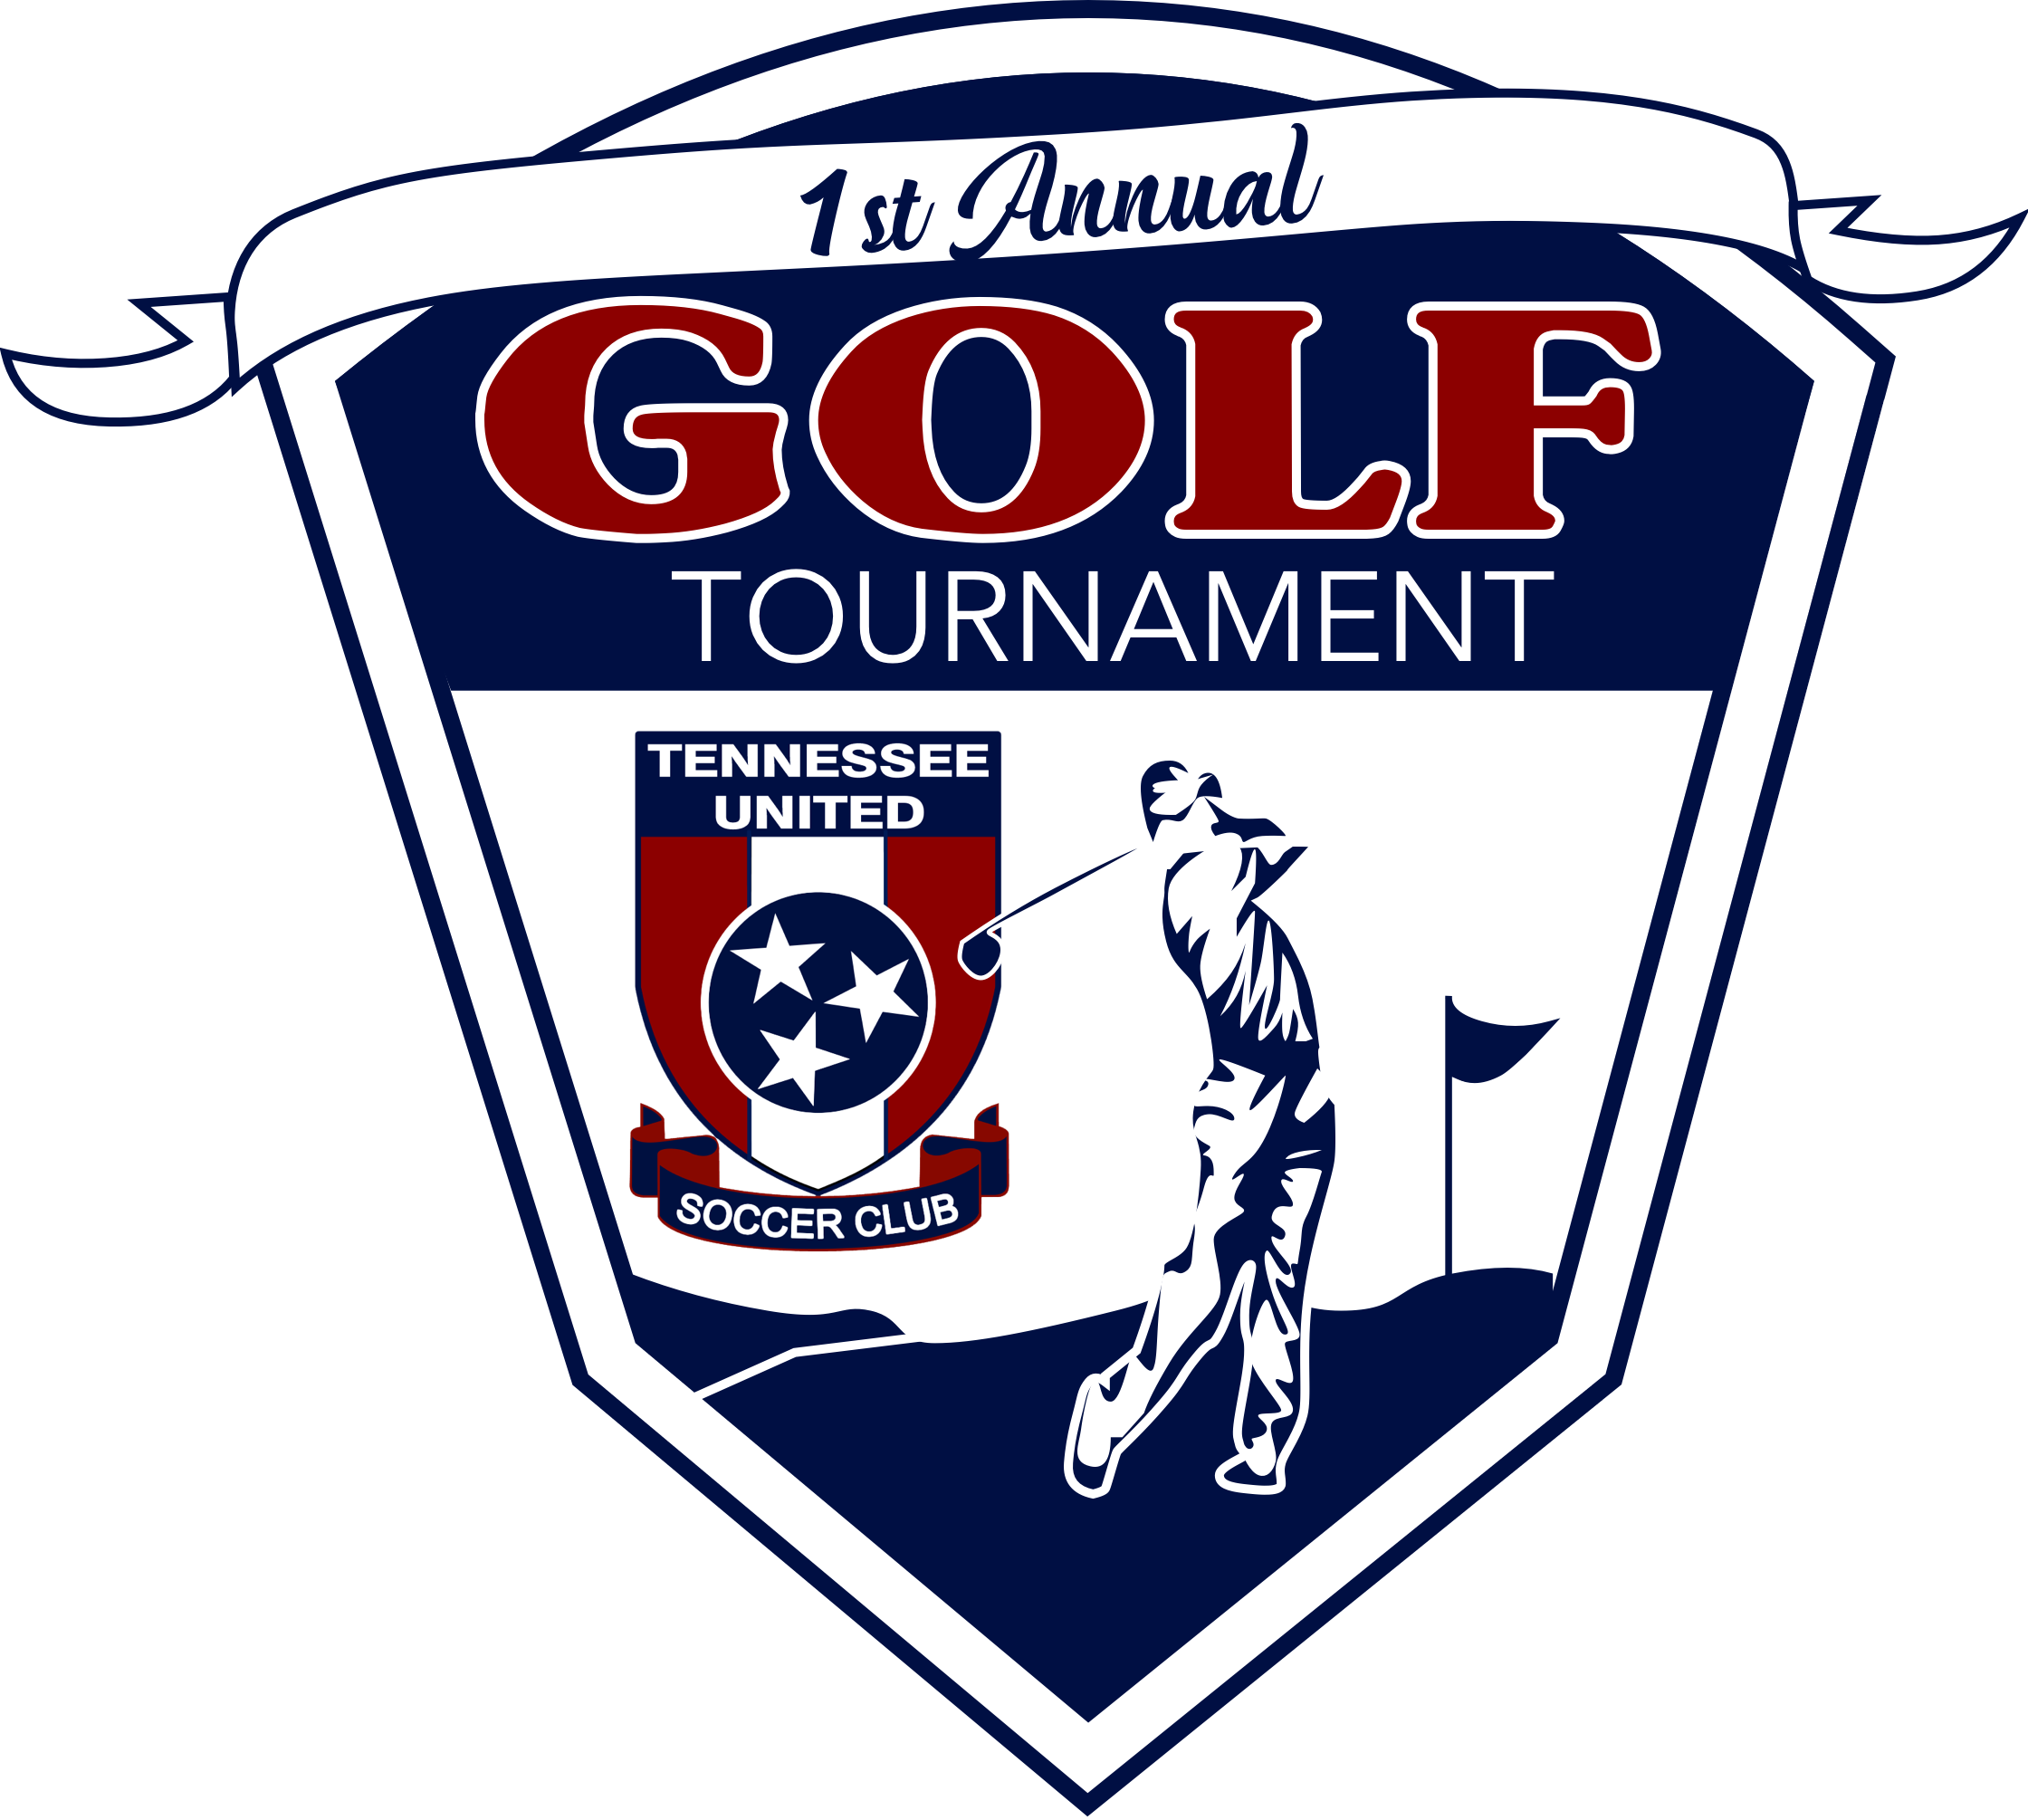 1st Annual TUSC Golf Tournament logo